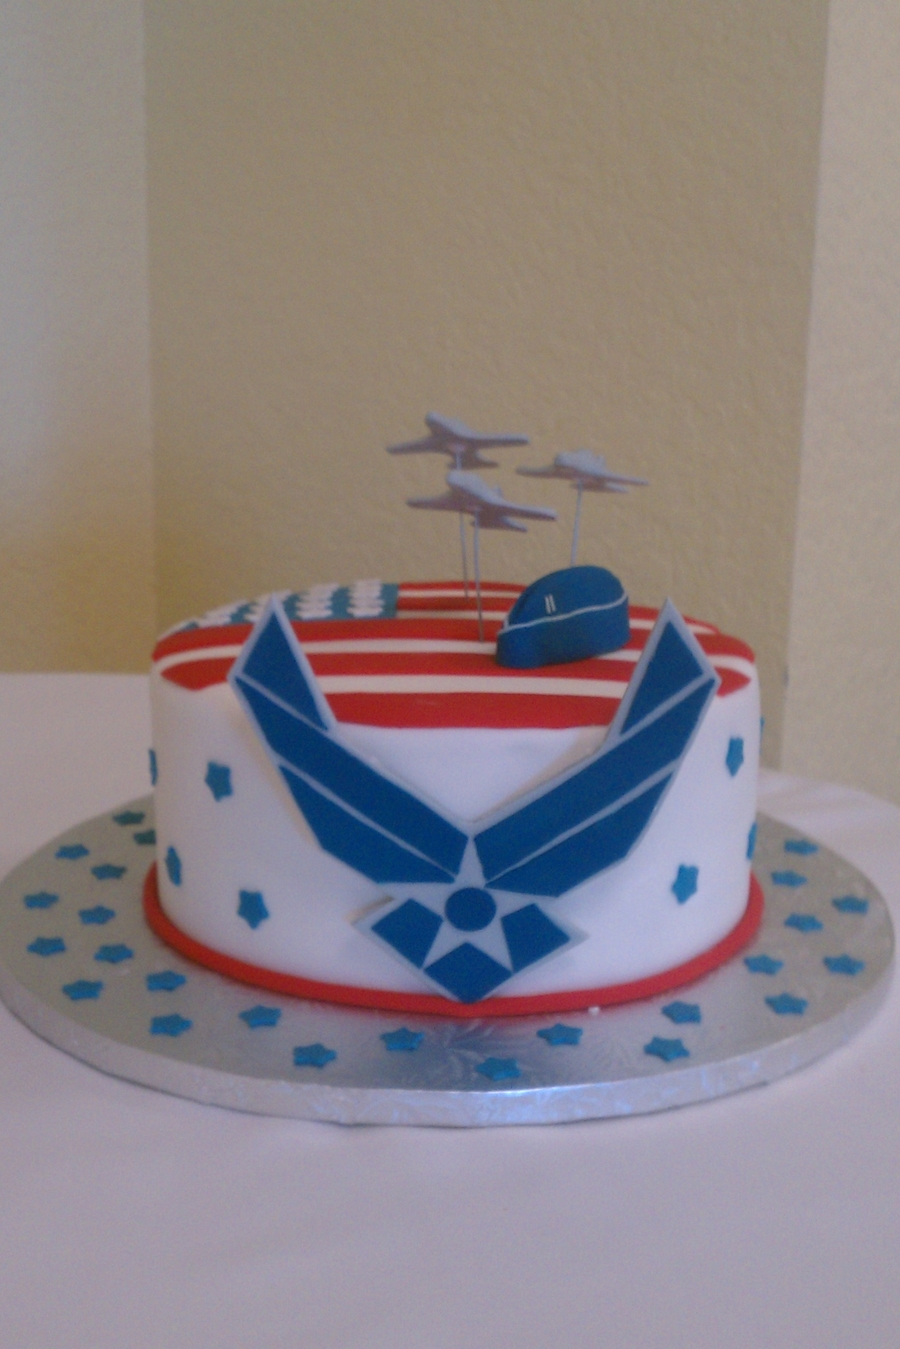 Air force grooms cake for Air force cakes decoration